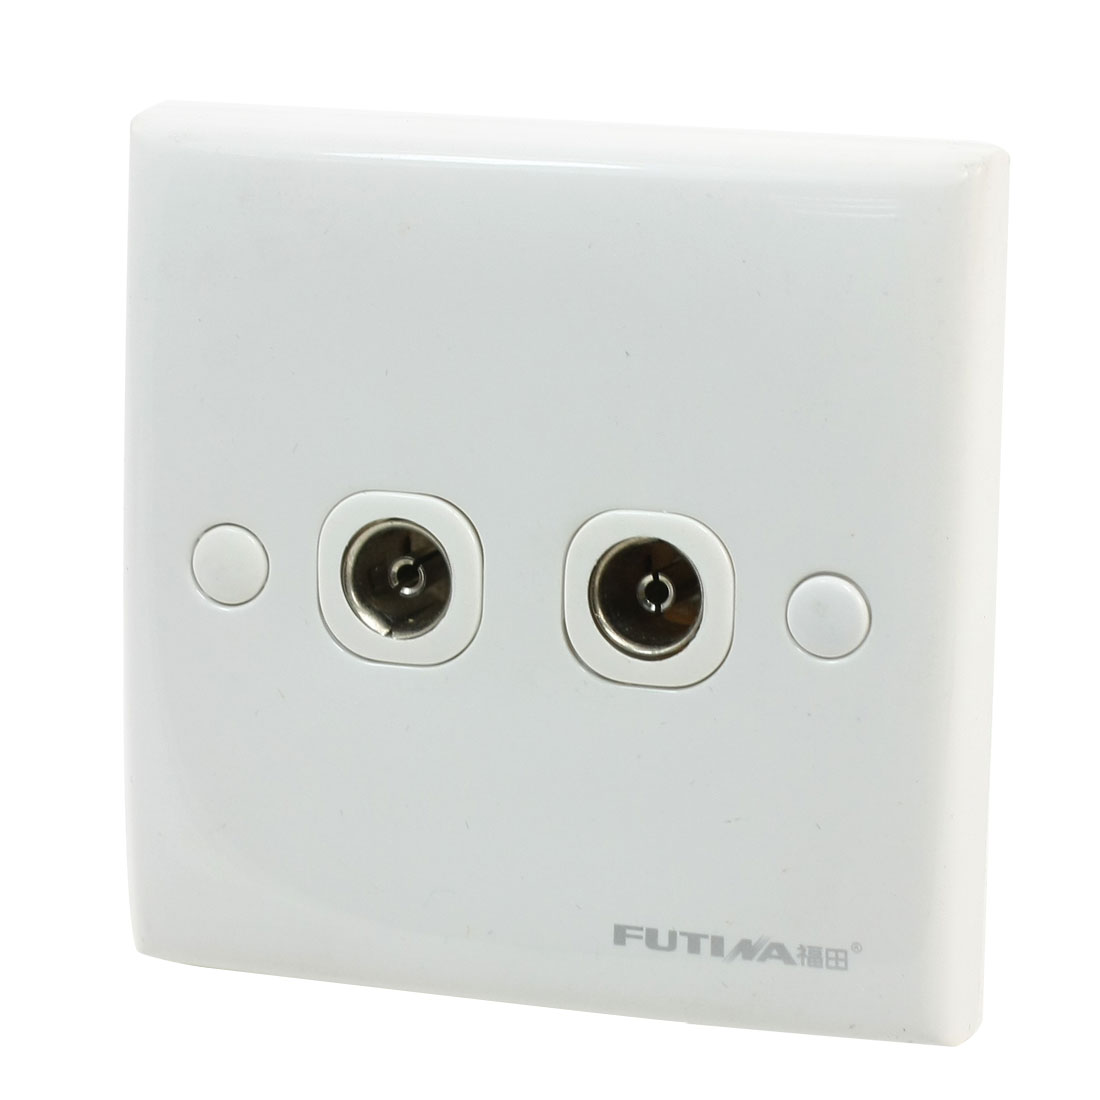 Bedroom PAL TV Television Aerial Socket Dual Outlet Wall Plate Panel